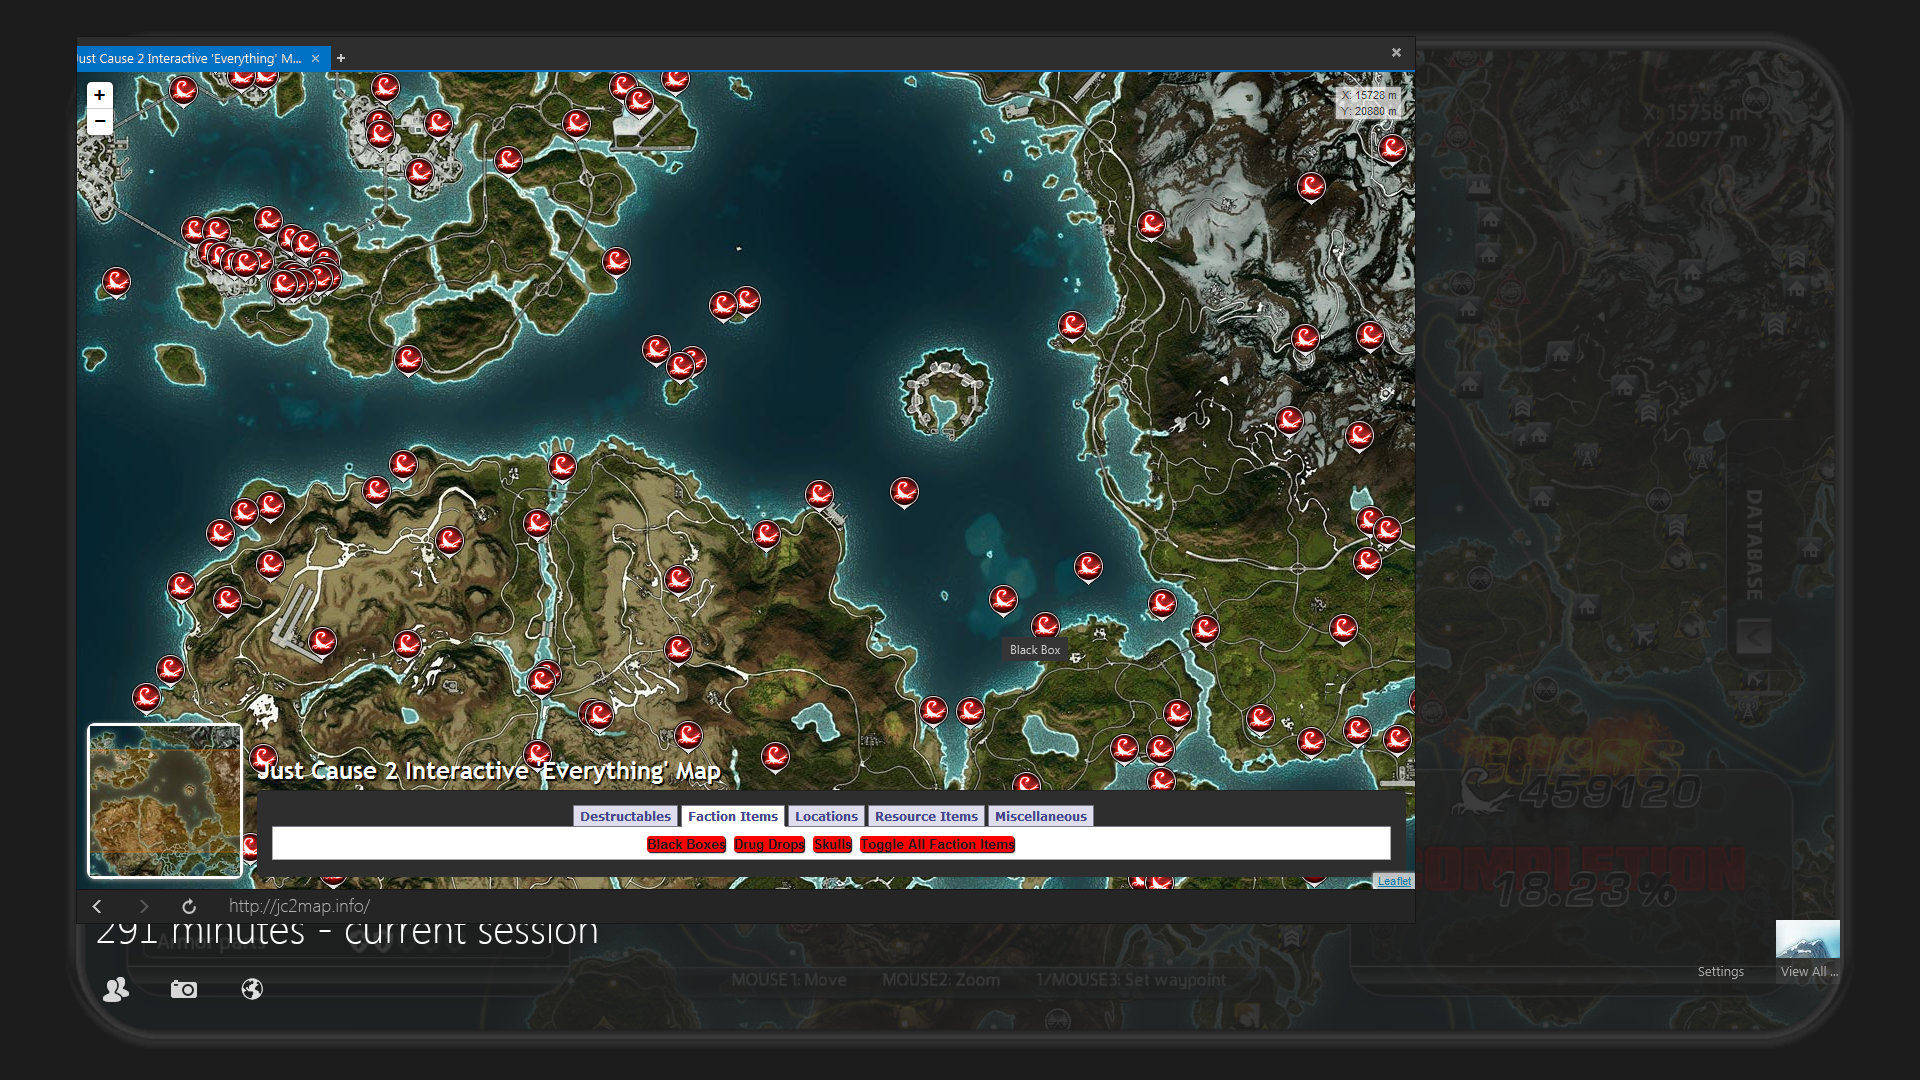 Steam Community    Guide    Just Cause 2 Interactive  EVERYTHING  Map Even though all of the items that you find in Just Cause 2 in included in this  map  it is still considered a work in progress as the formatting is a mess